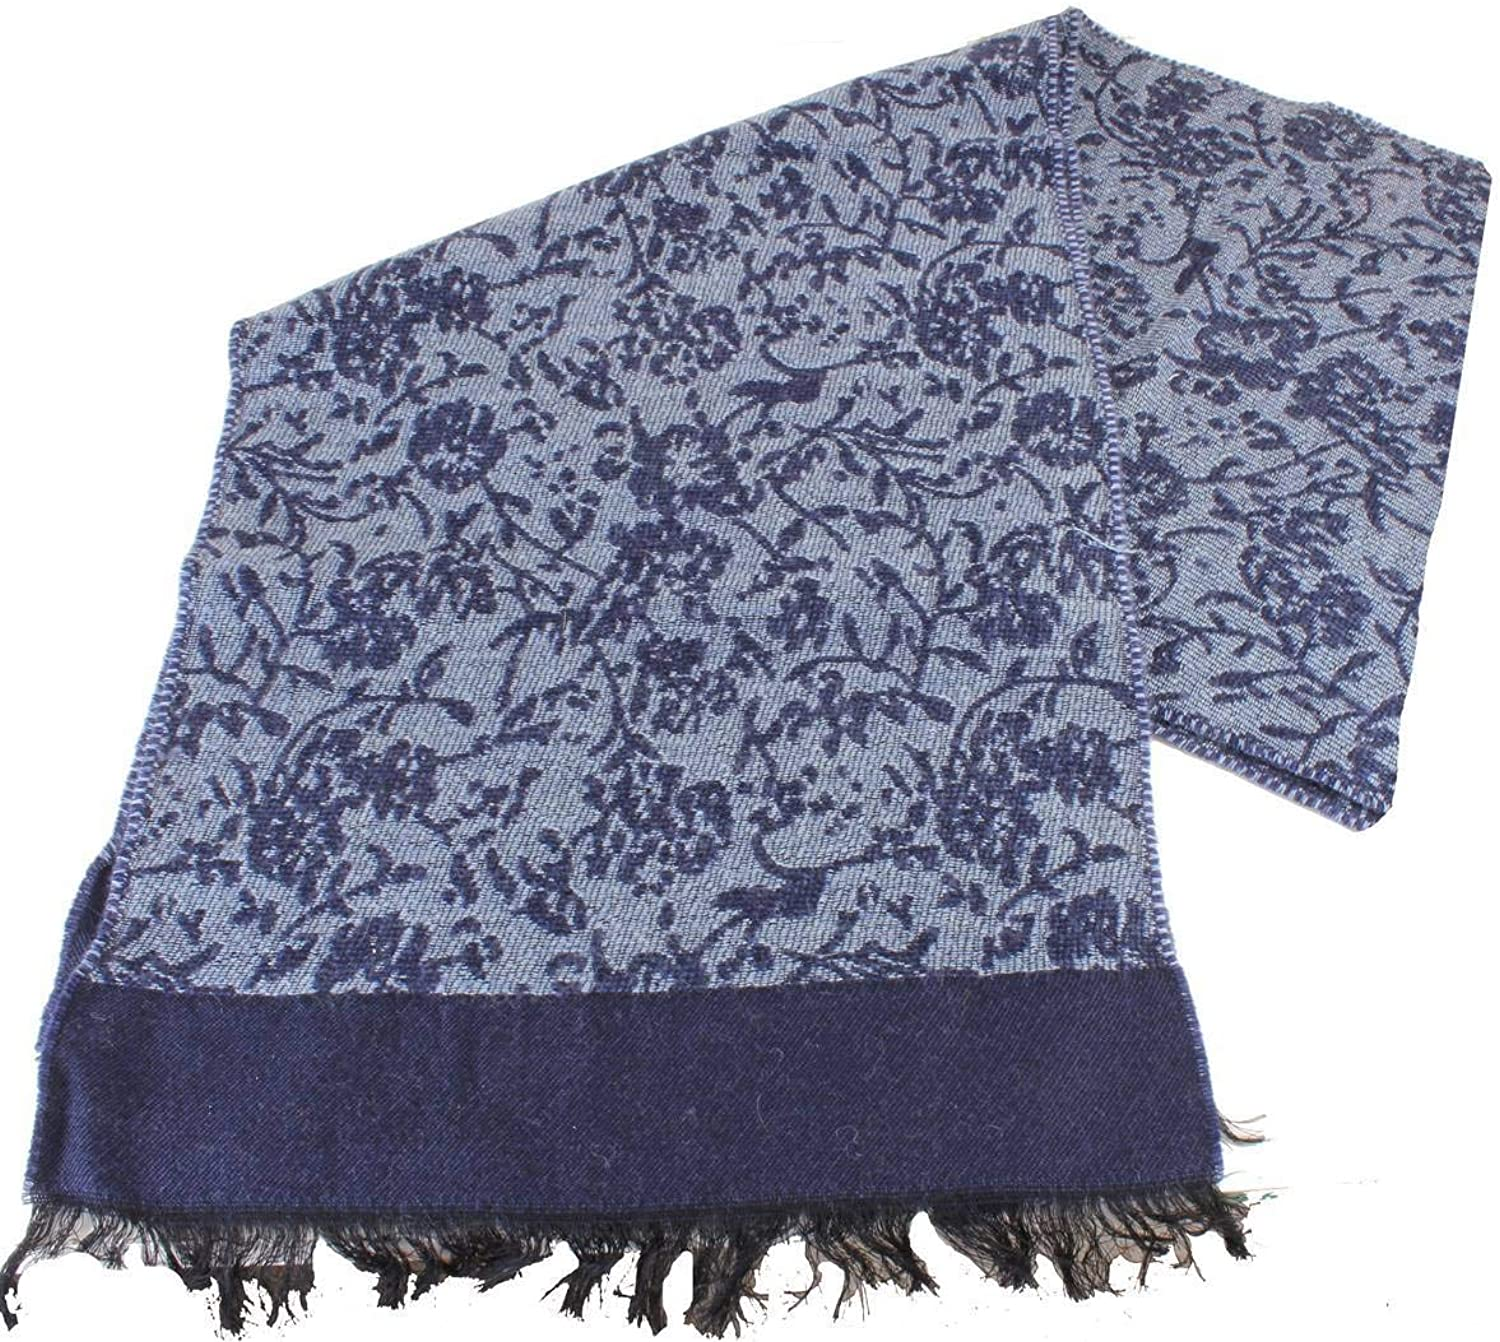 Bassin and Brown Womens Bonsai House Self Flower Wool Scarf  Navy bluee